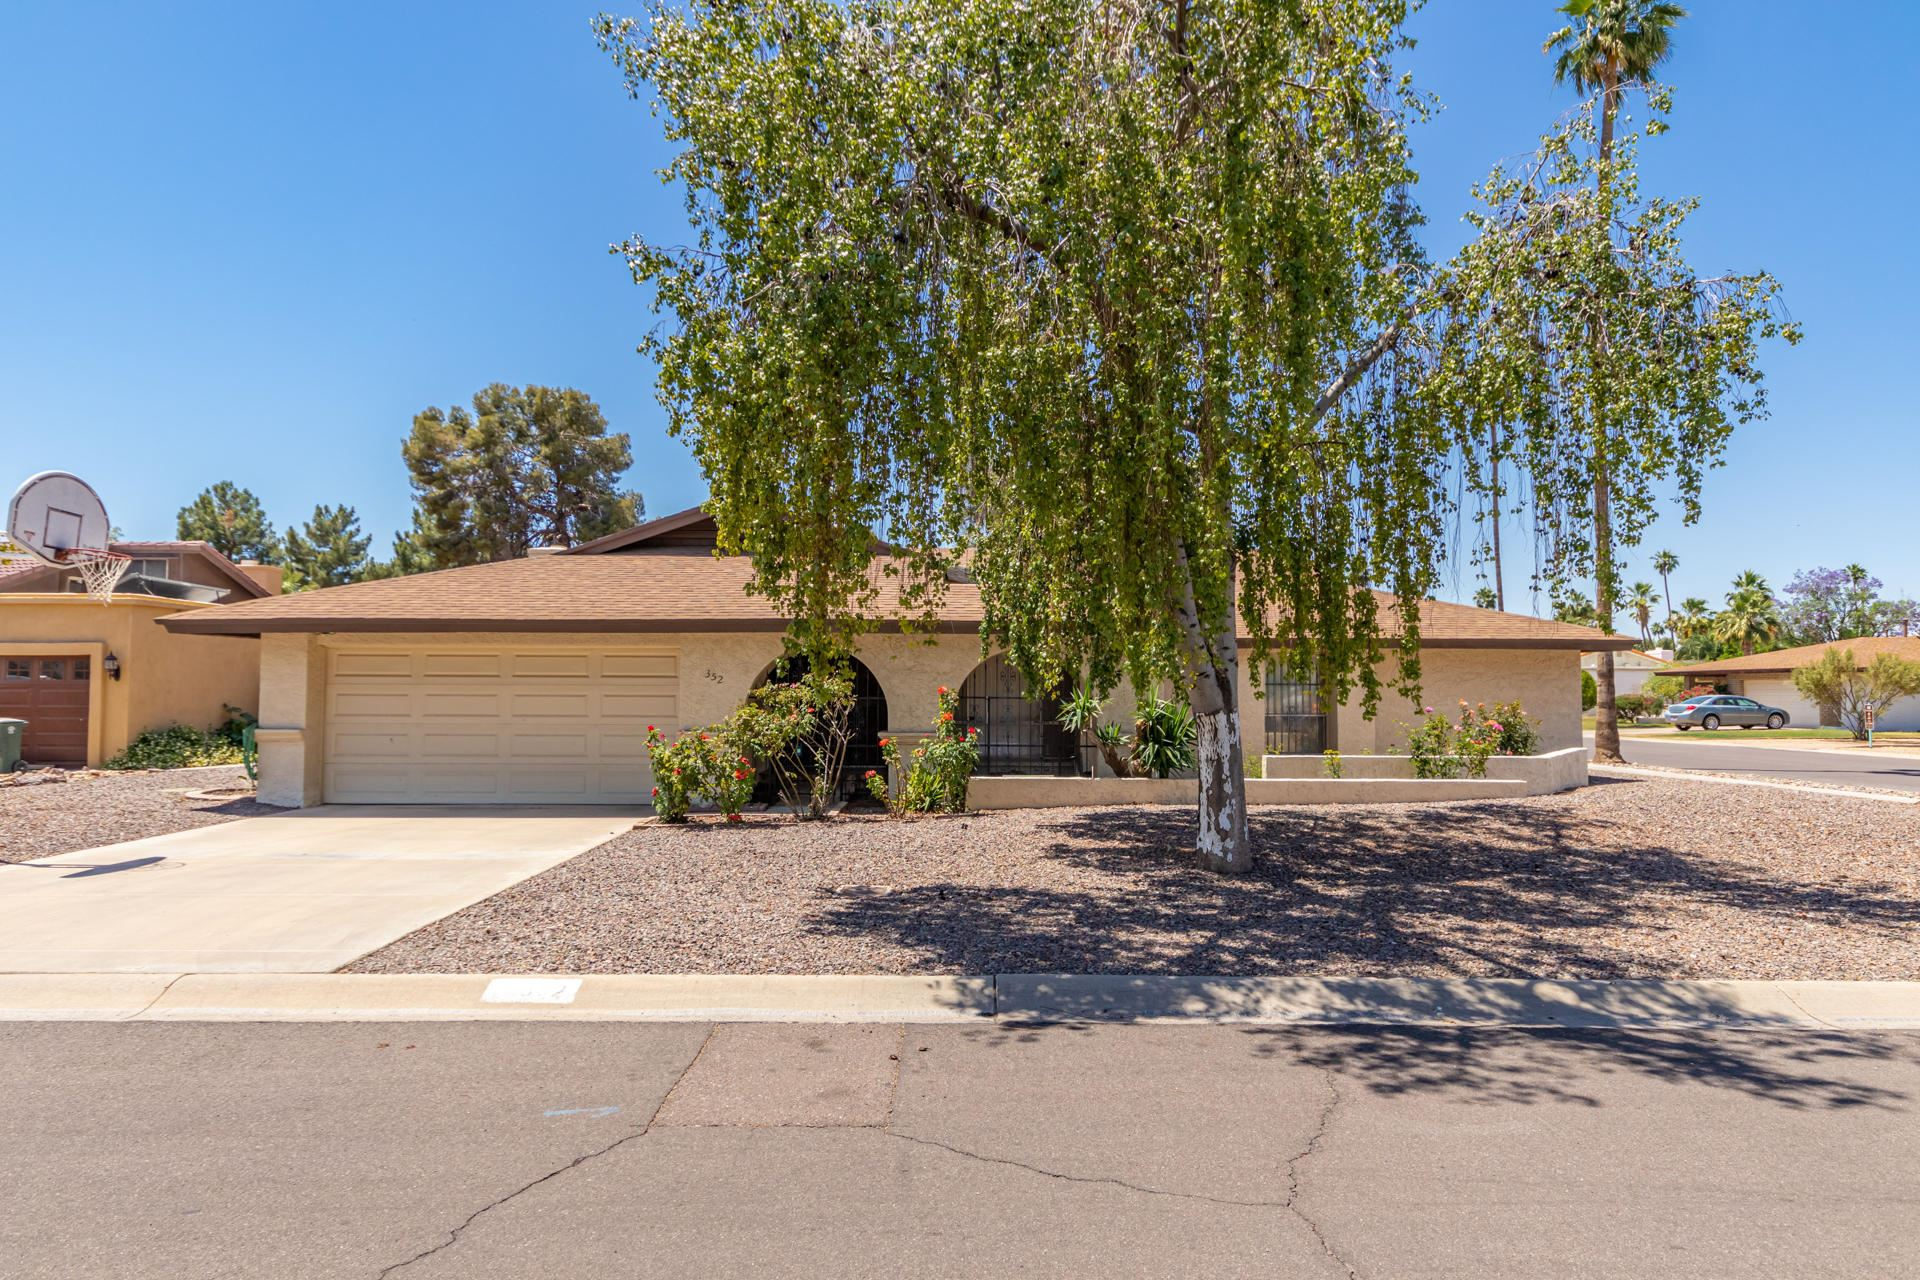 Photo of 352 S MORENO Circle, Litchfield Park, AZ 85340 (MLS # 6231435)